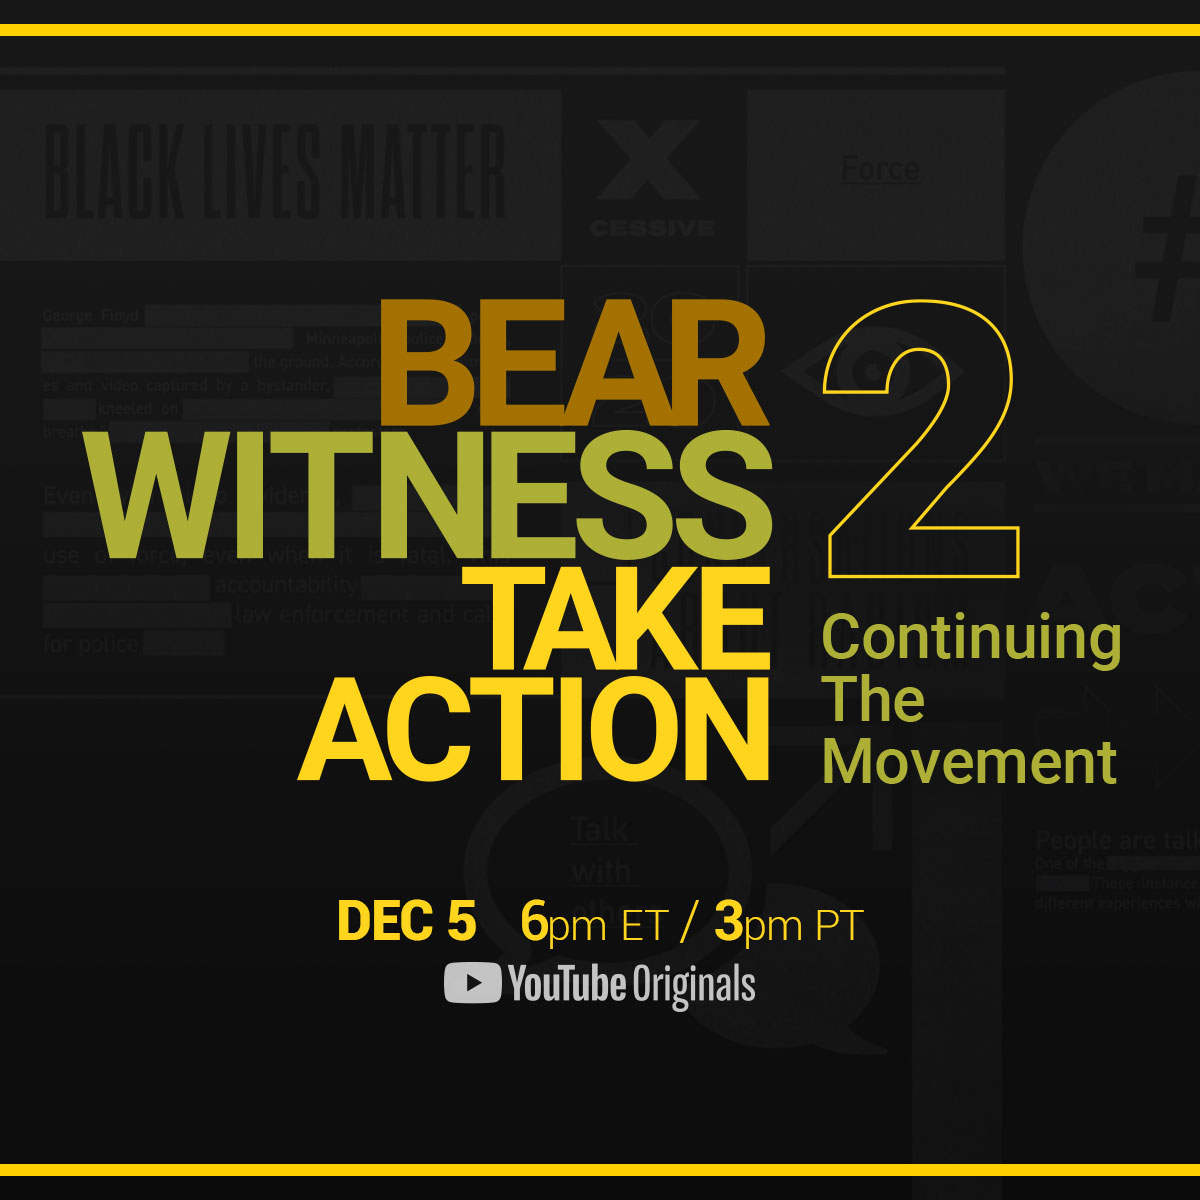 On 12/5, we're bringing artists, activists, athletes and Creators together for an honest conversation about the movement for racial justice. Join us for #BearWitnessTakeAction 2 and preview the conversation in our Creator documentaries launching this week: